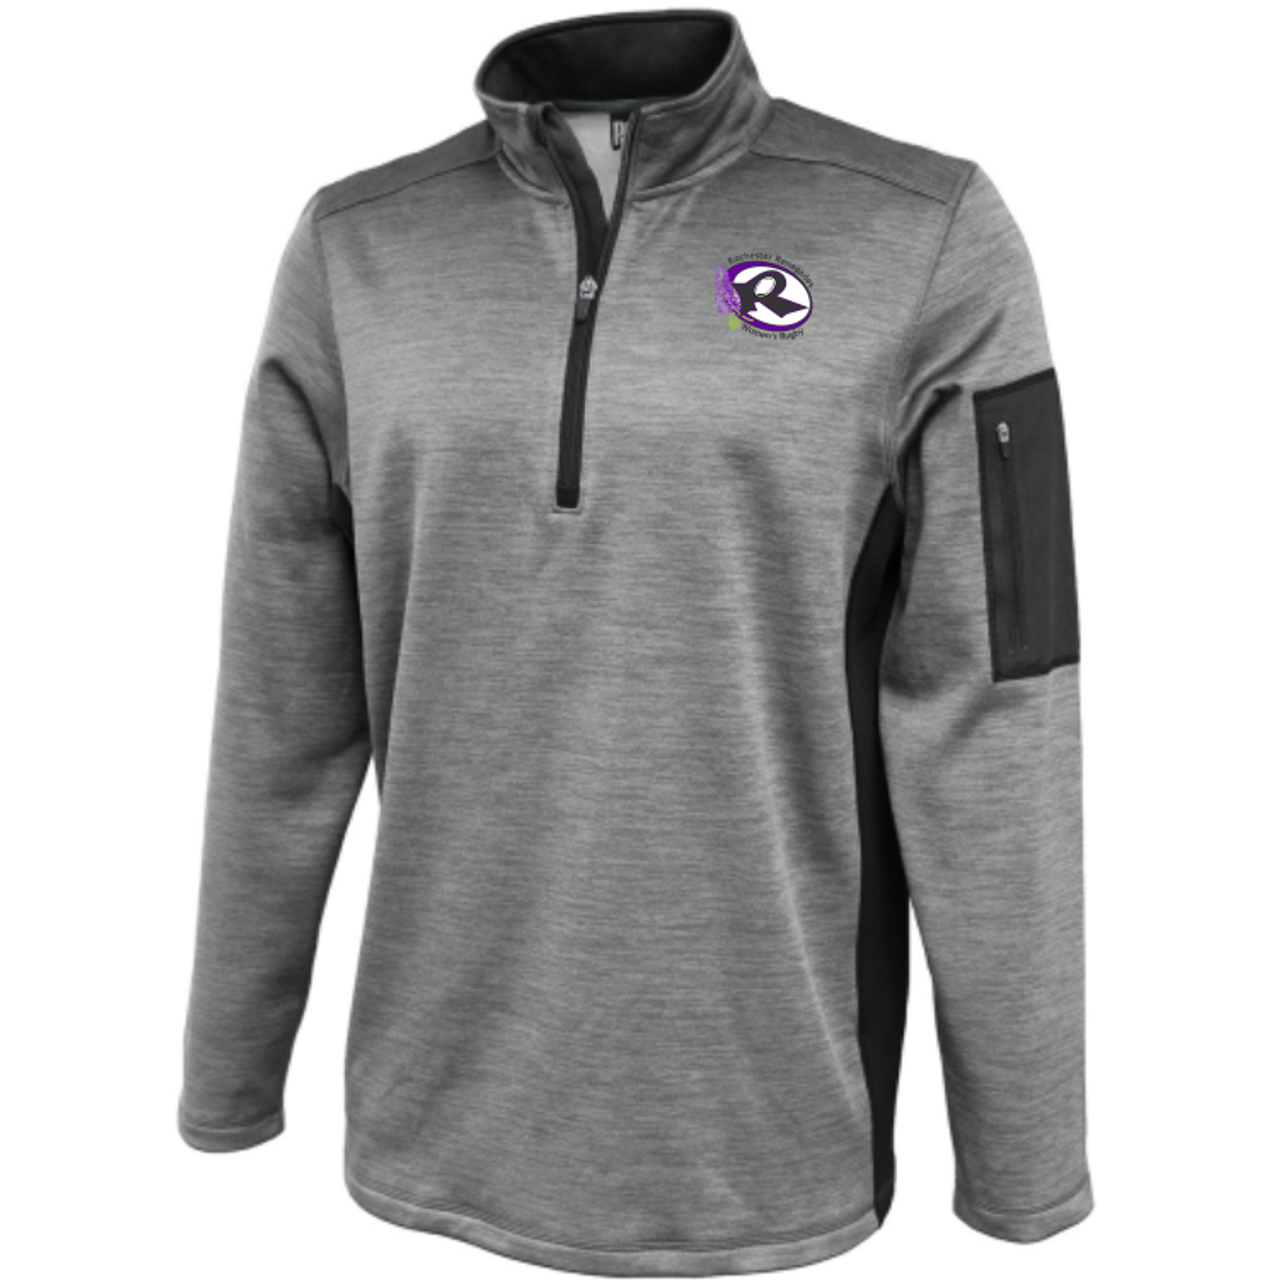 Rochester Renegades Performance Fleece 1/4-Zip, Silver